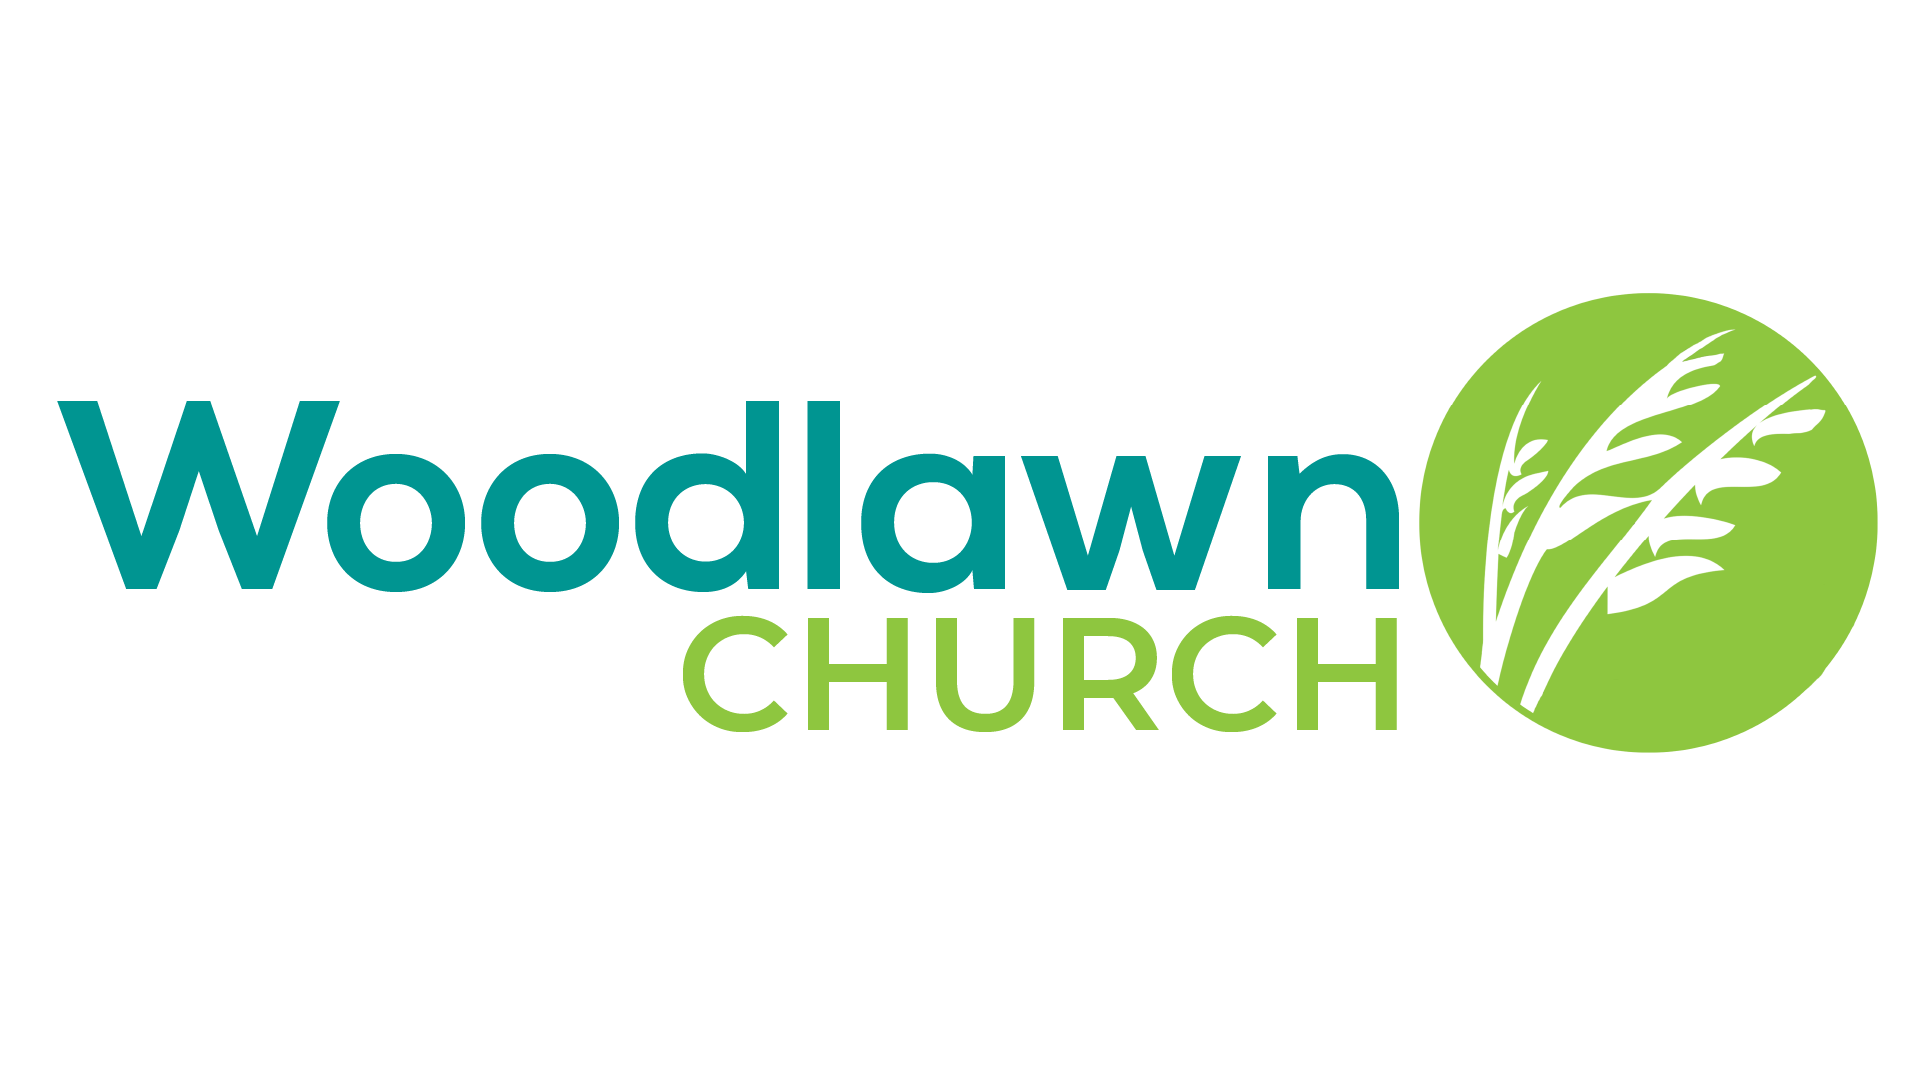 Woodlawn Church